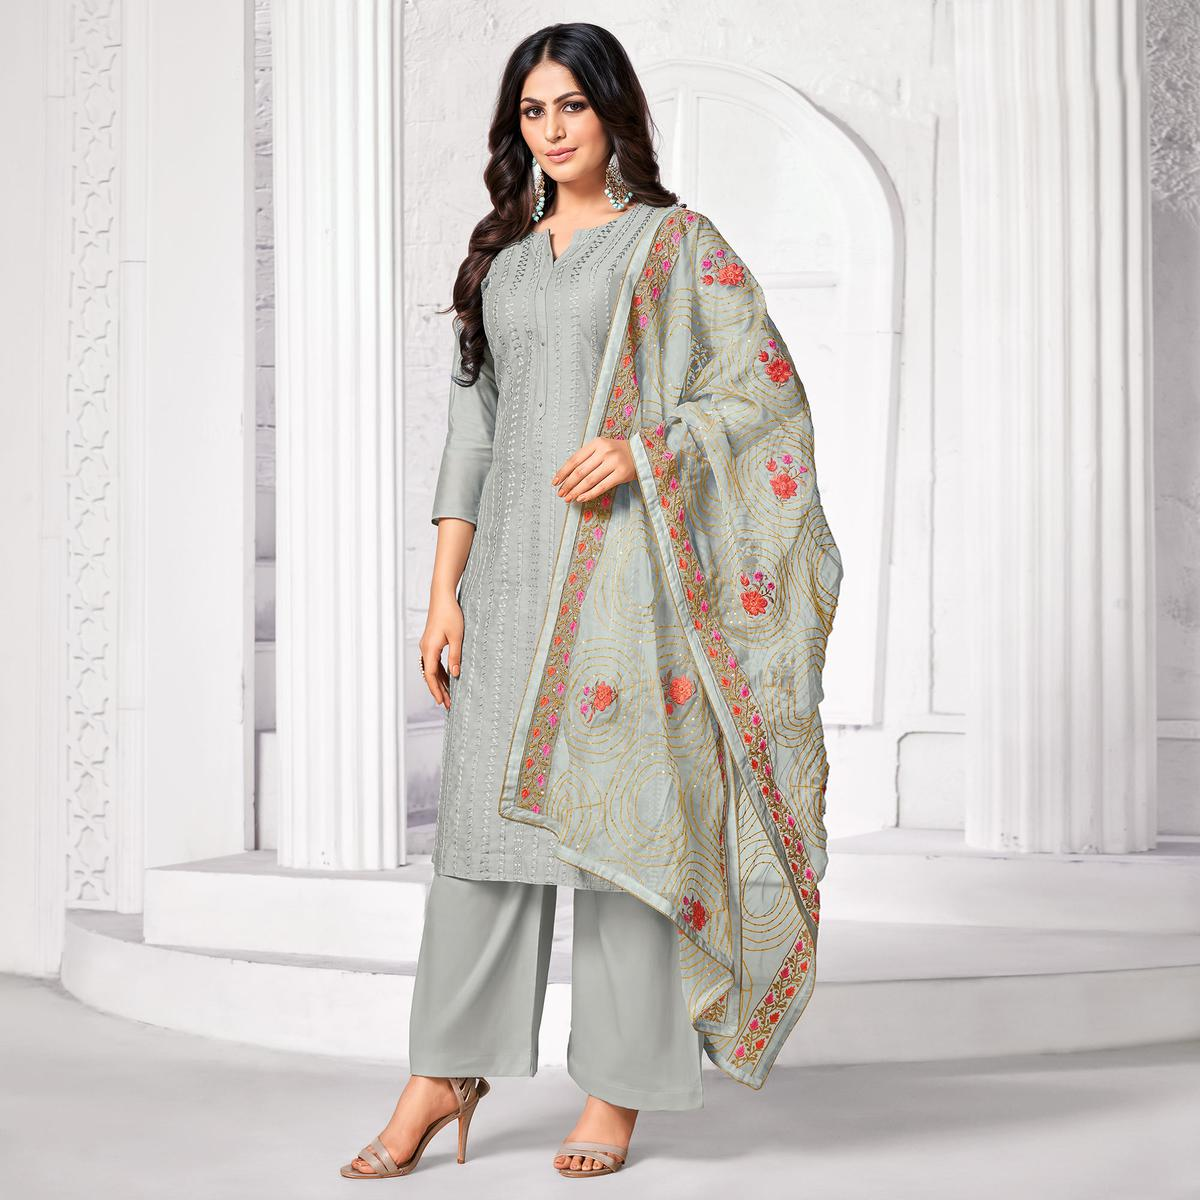 Flaunt Light Grey Colored Partywear Embroidered Pure Jam Cotton Dress Material